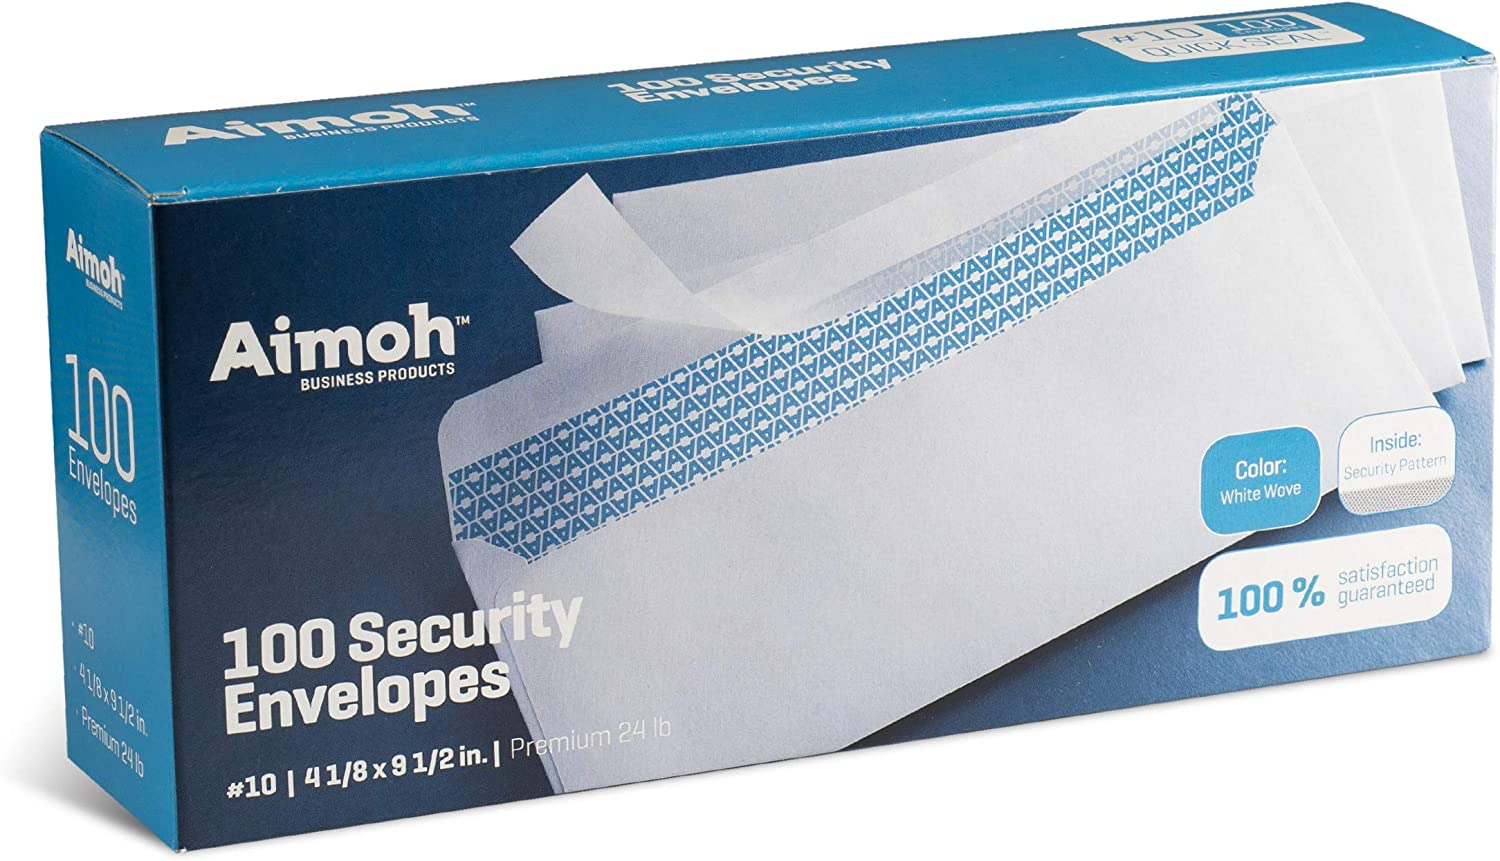 #10 Security Tinted Self-Seal Envelopes - No Window - EnveGuard, Size 4-1/8 X 9-1/2 Inches - White - 24 LB - 100 Count (34100) 81U5FugRCsL